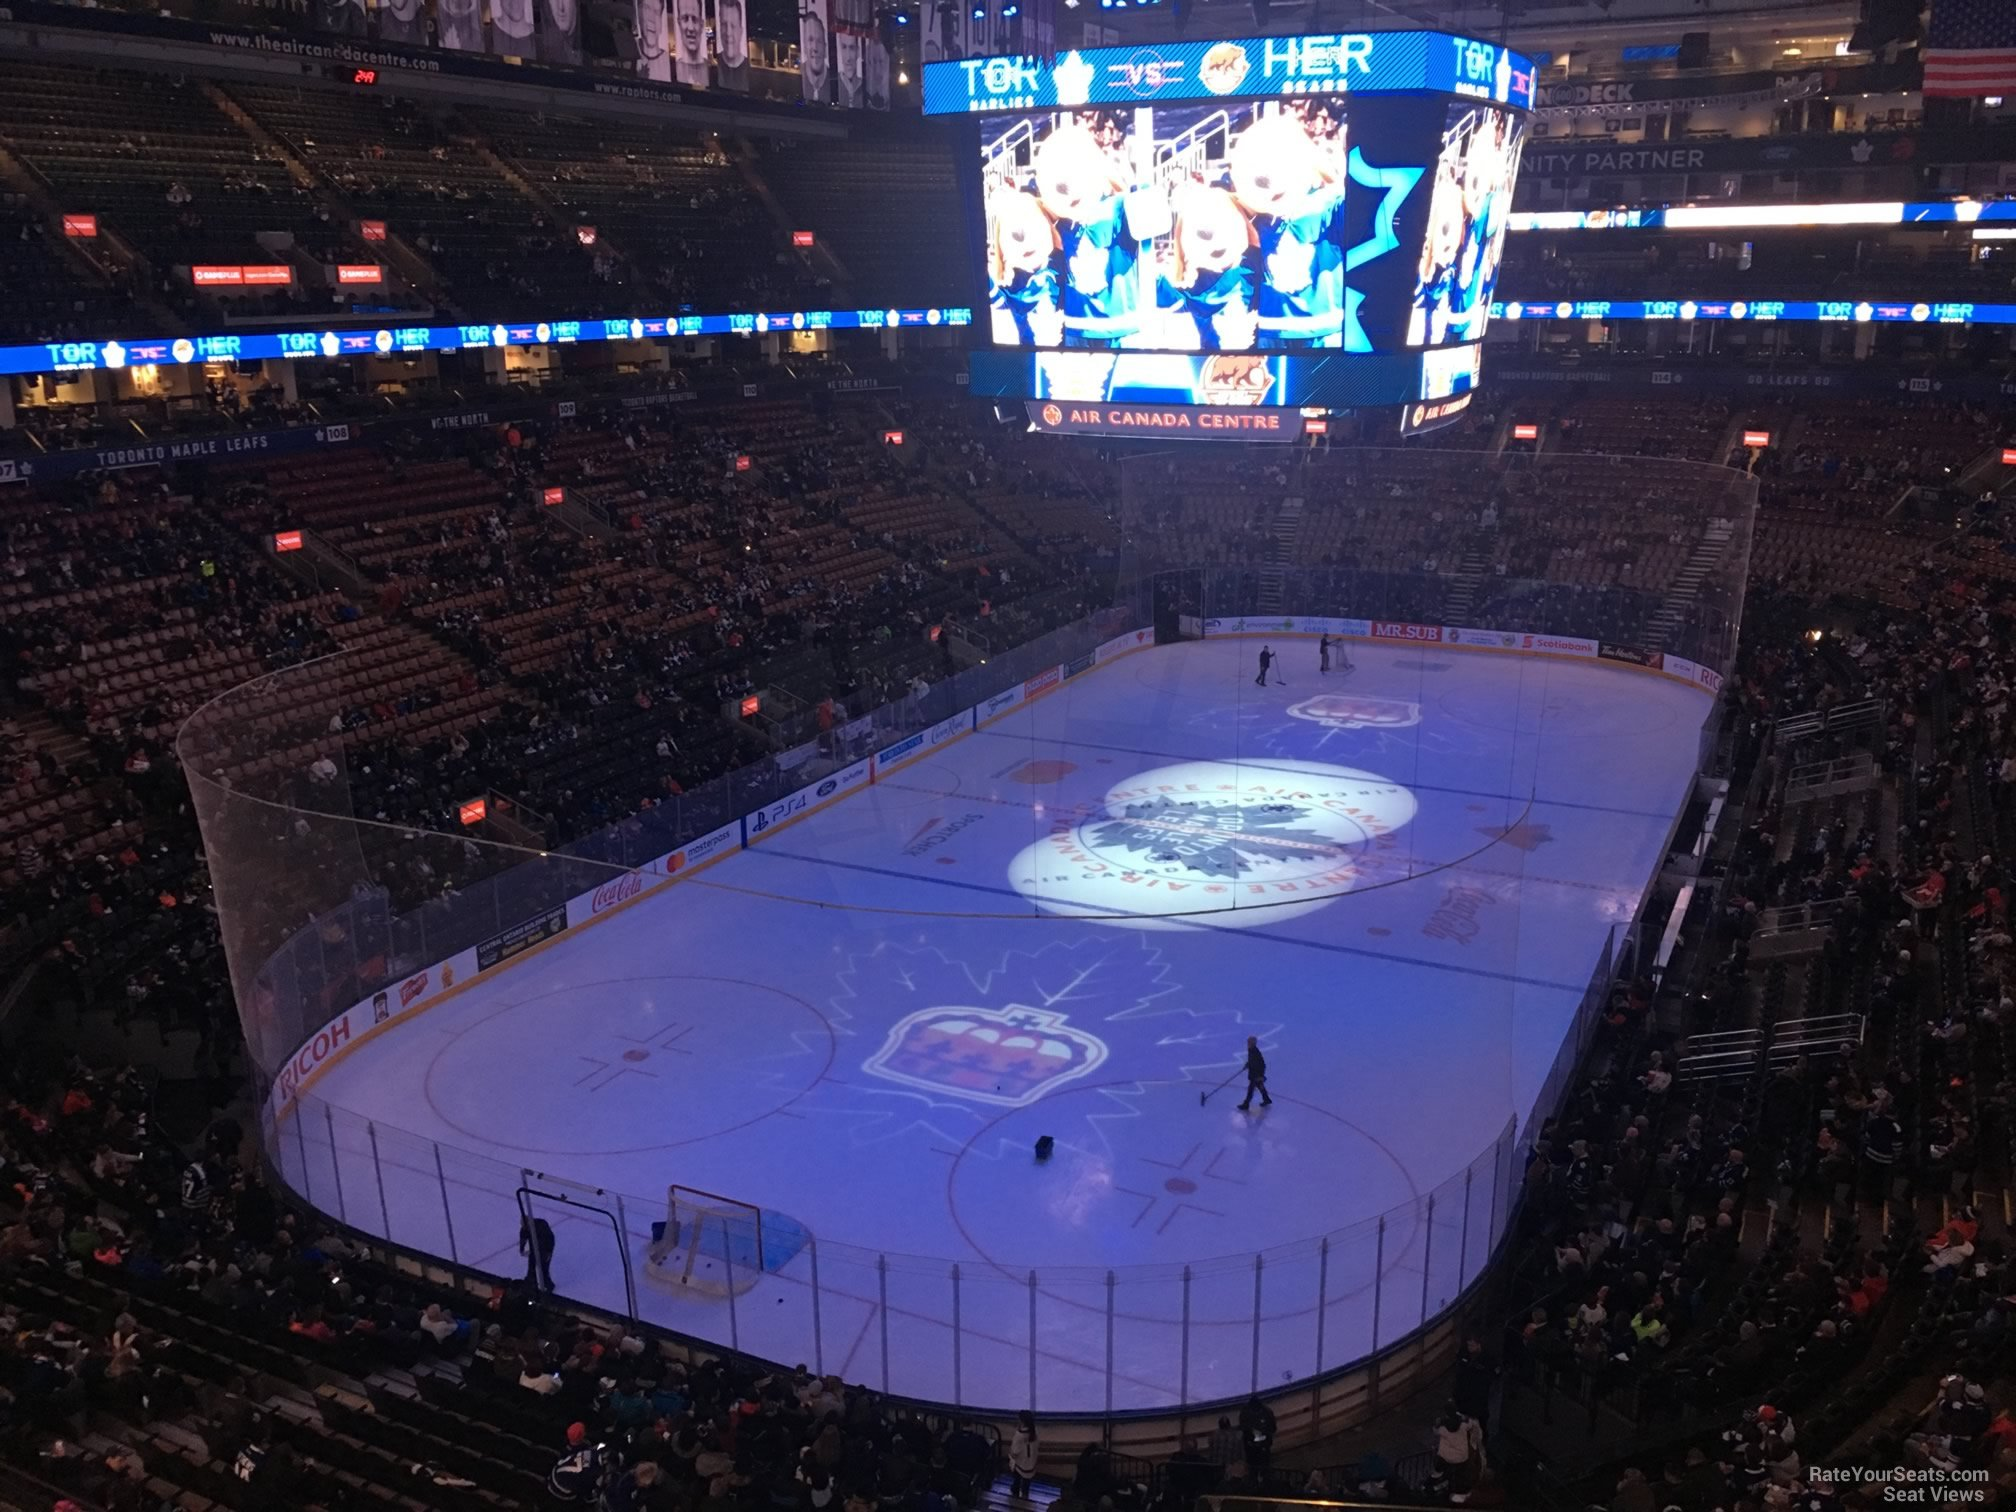 Toronto Maple Leafs Seat View for Scotiabank Arena Section 302, Row 3